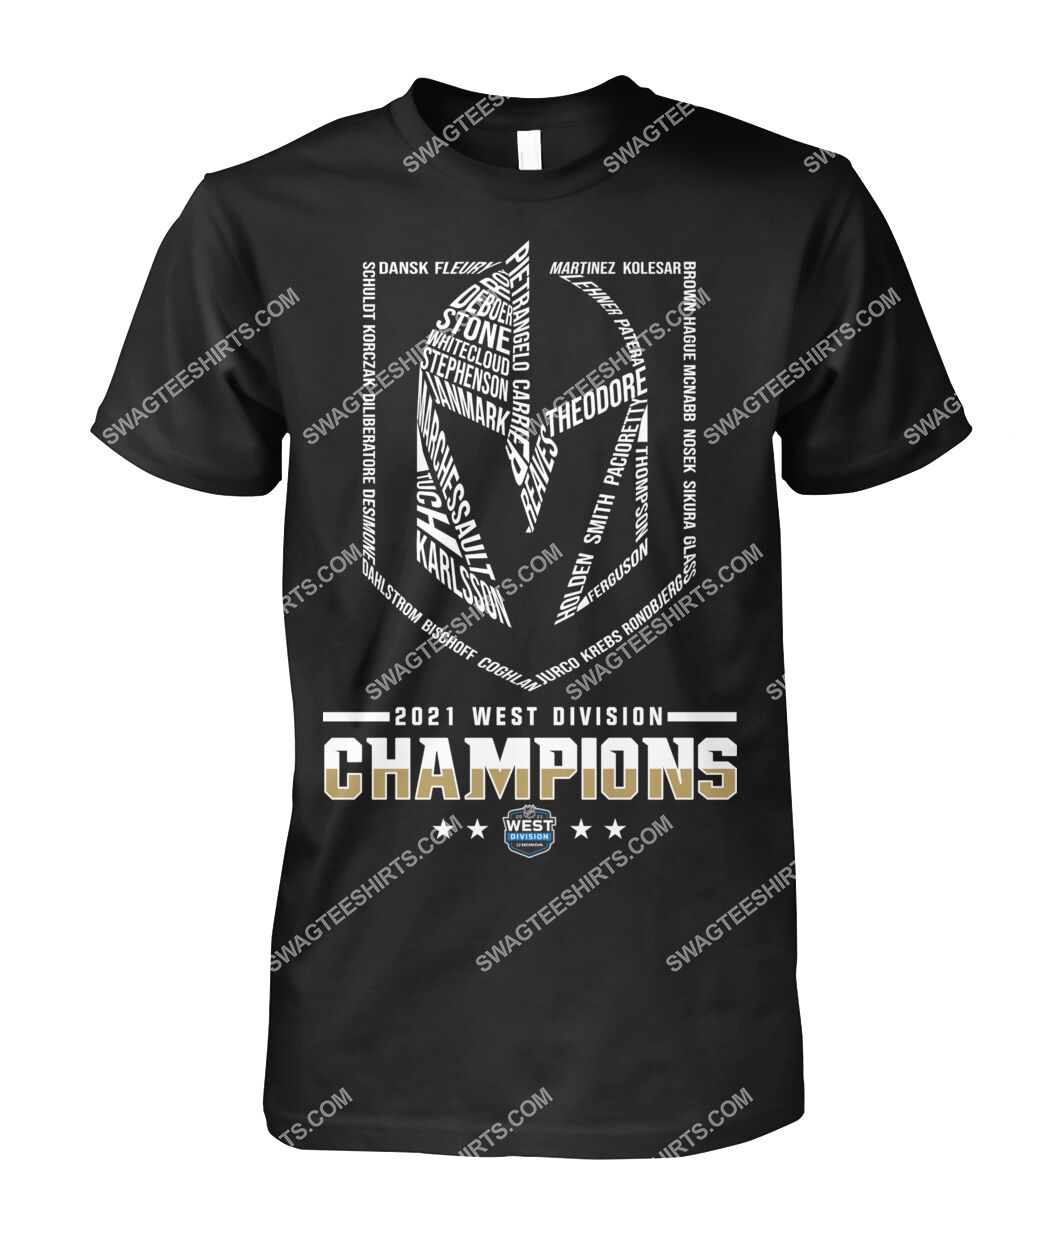 2021 west division champions vegas golden knights tshirt 1